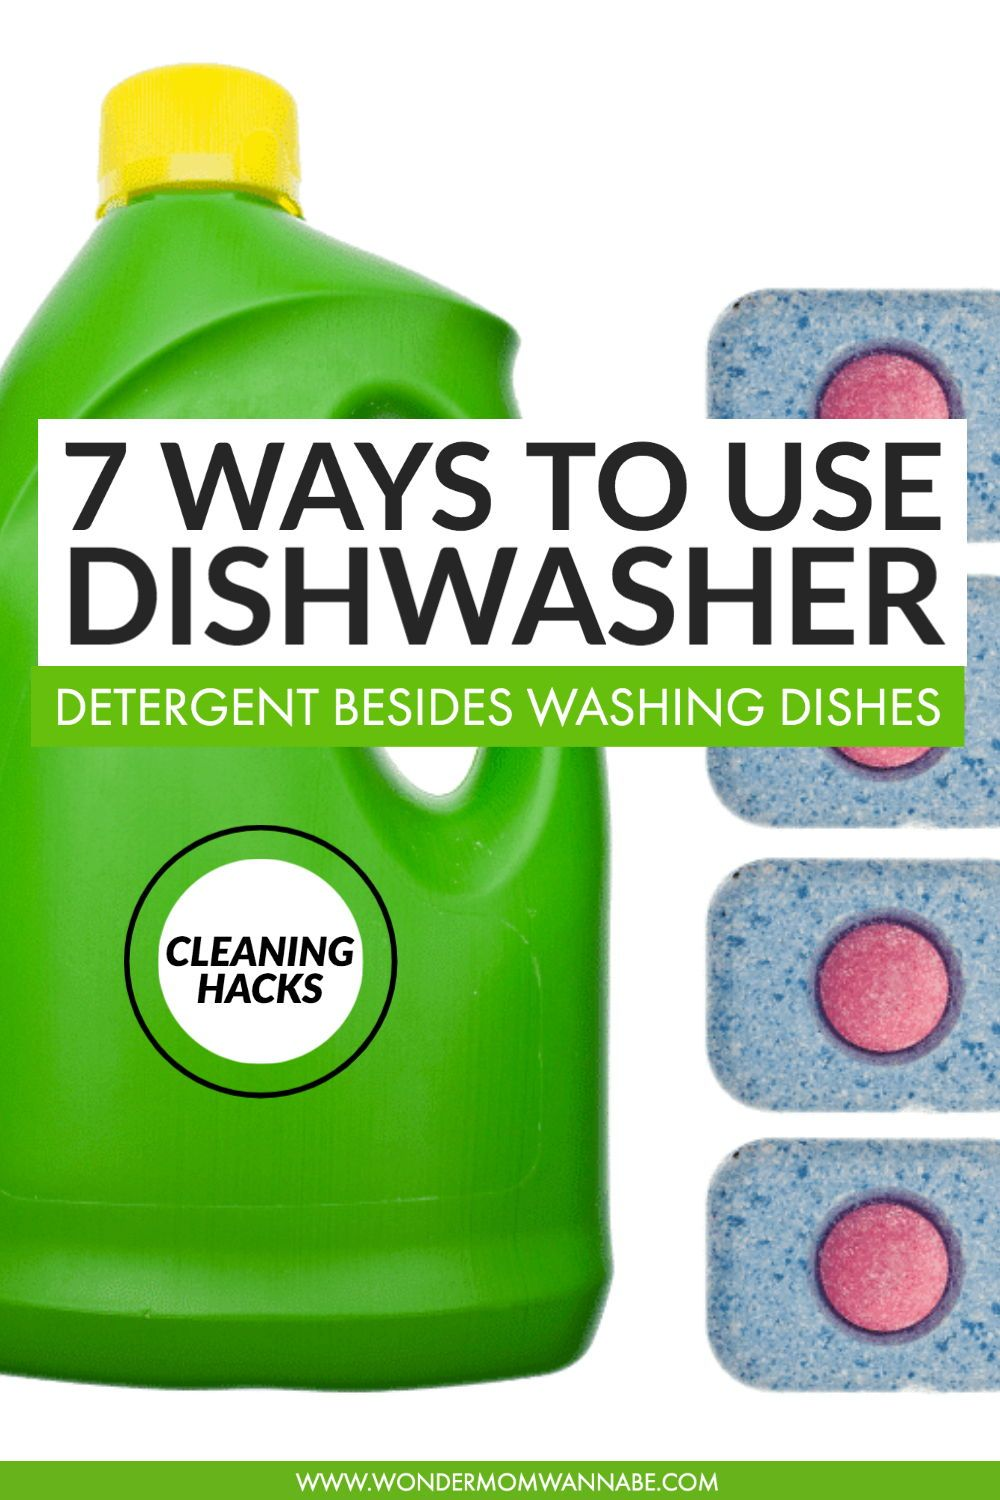 Other Uses For Dishwasher Pods And Detergent In 2020 Dishwasher